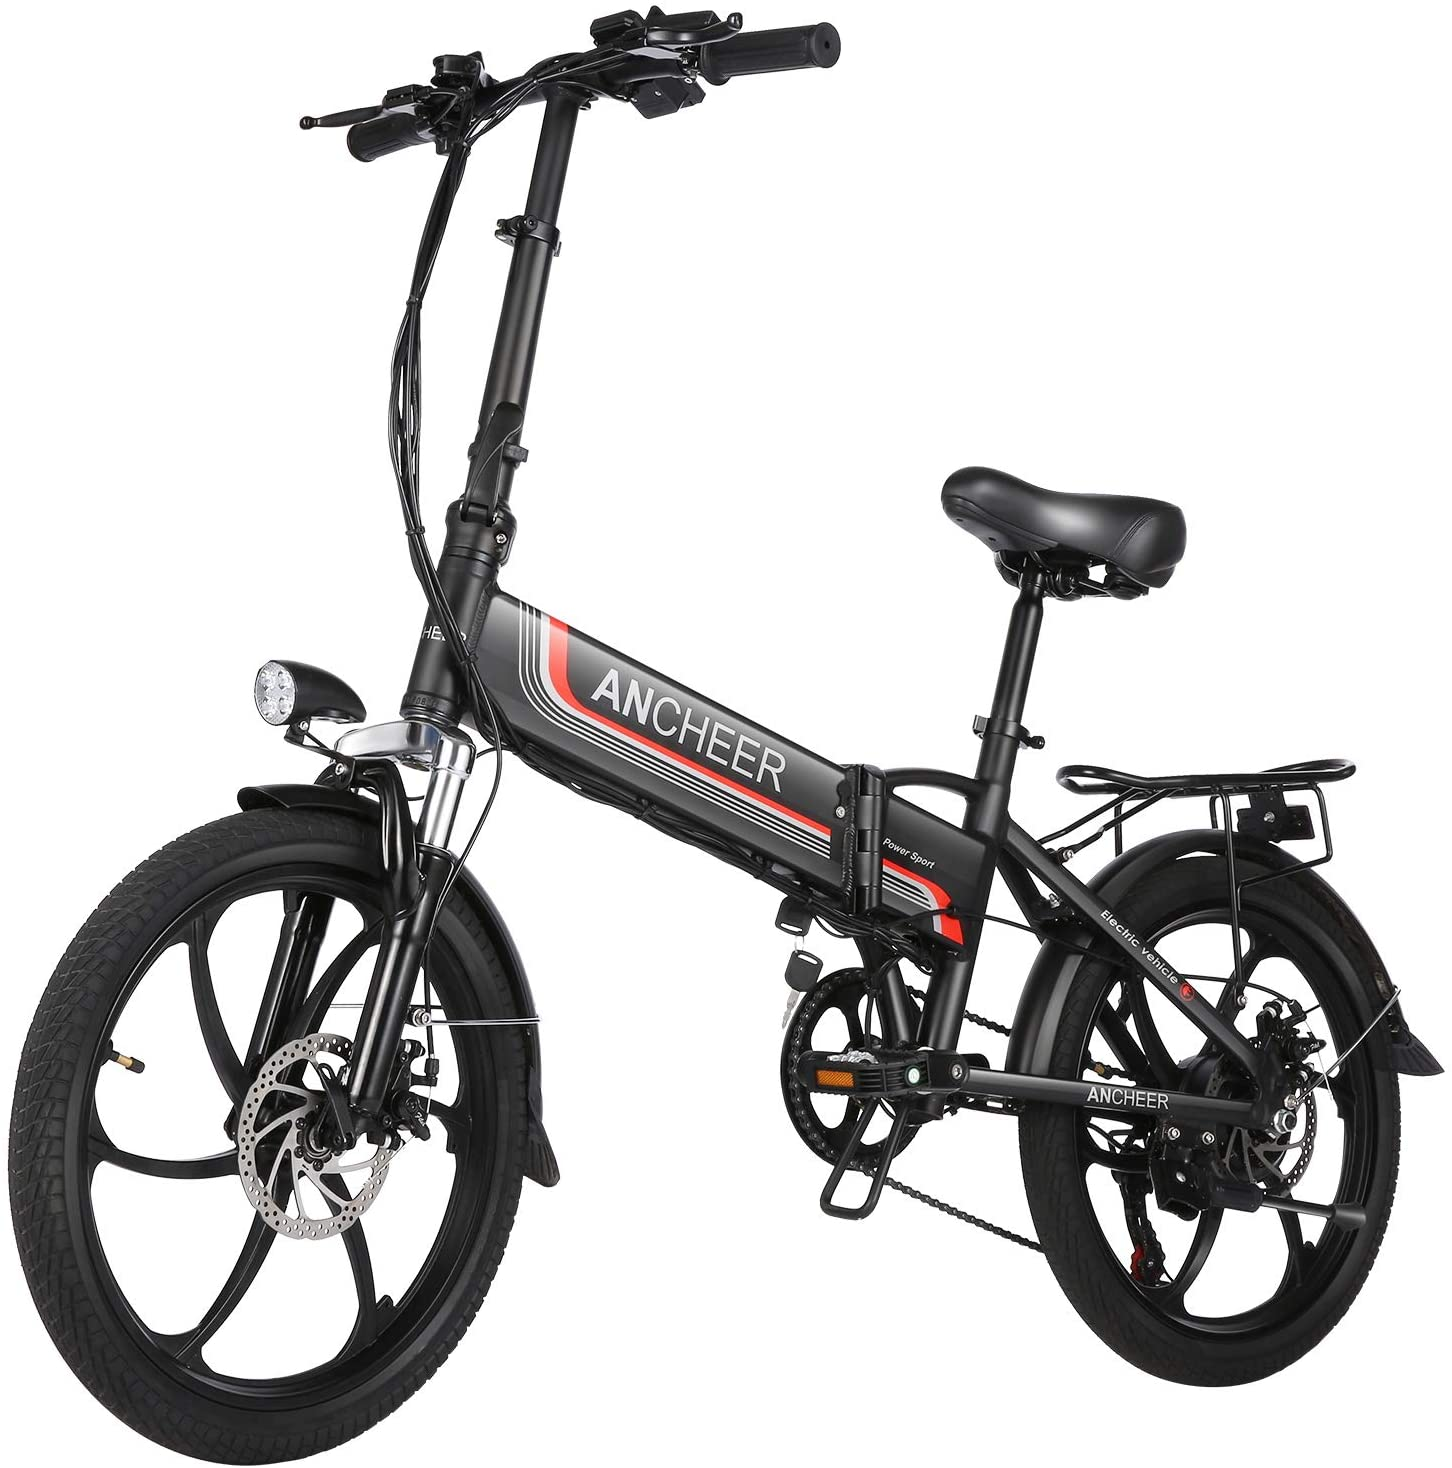 ANCHEER LCD Display Collapsible Bike